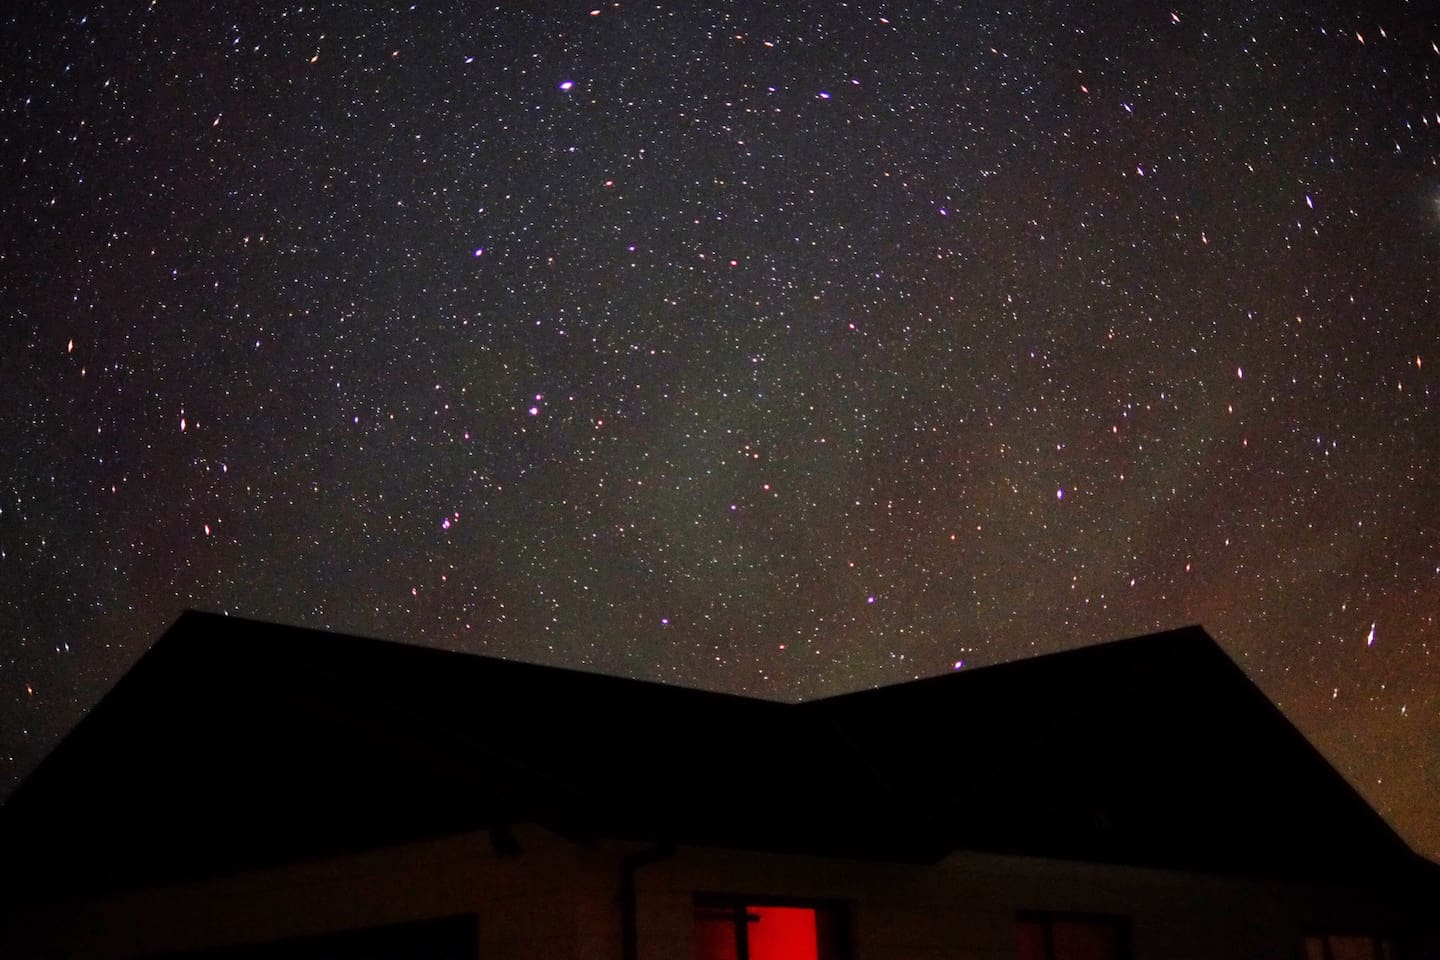 The beautiful night sky on a clear night from our back lawn